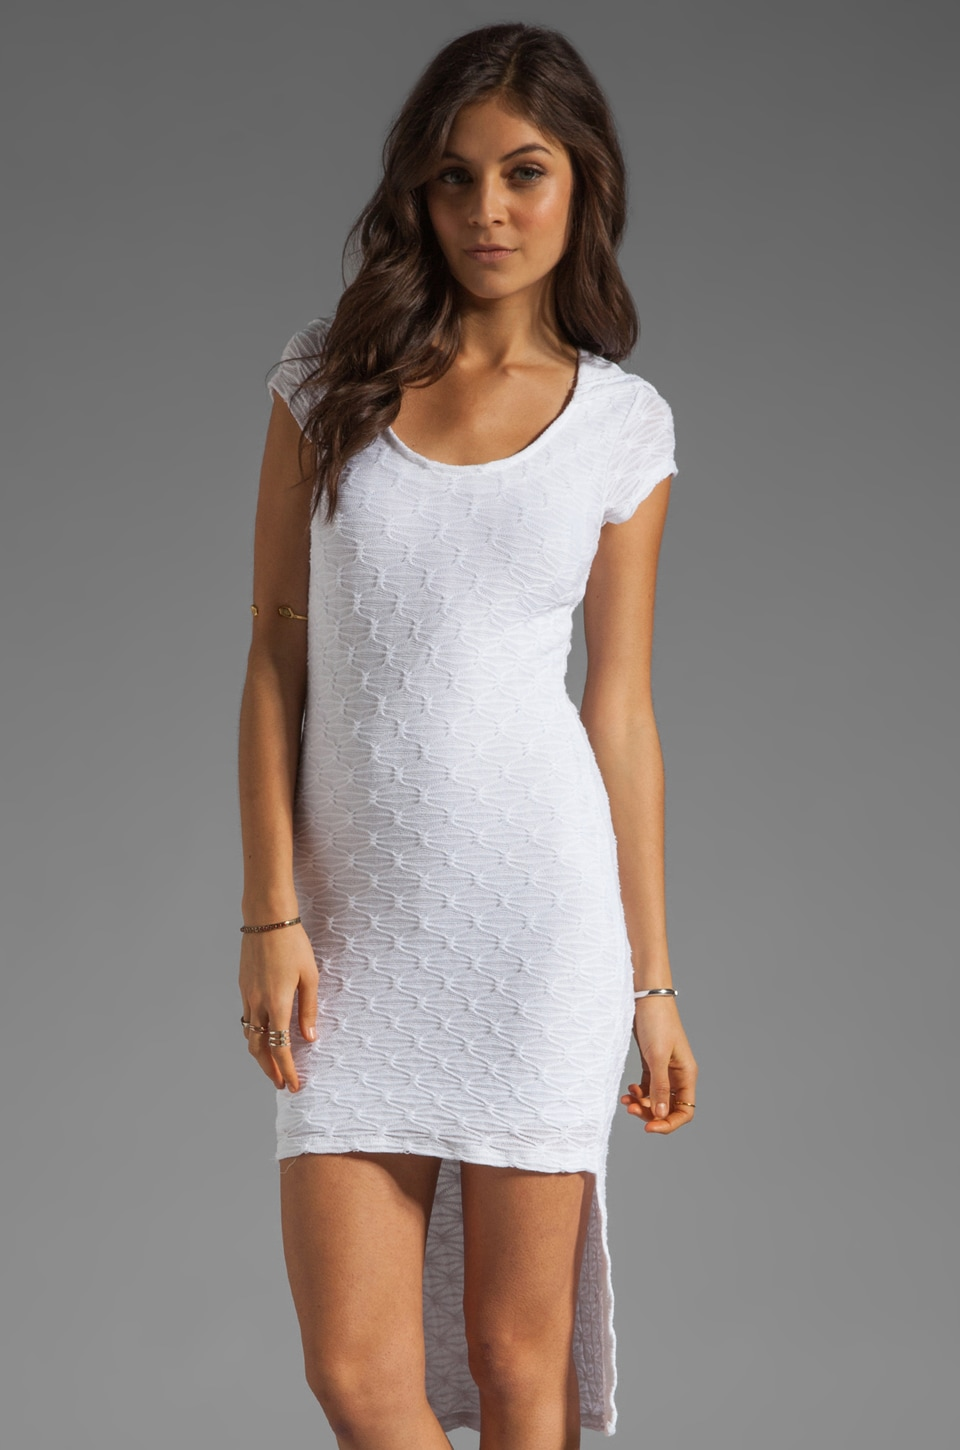 WOODLEIGH Stella Dress in White